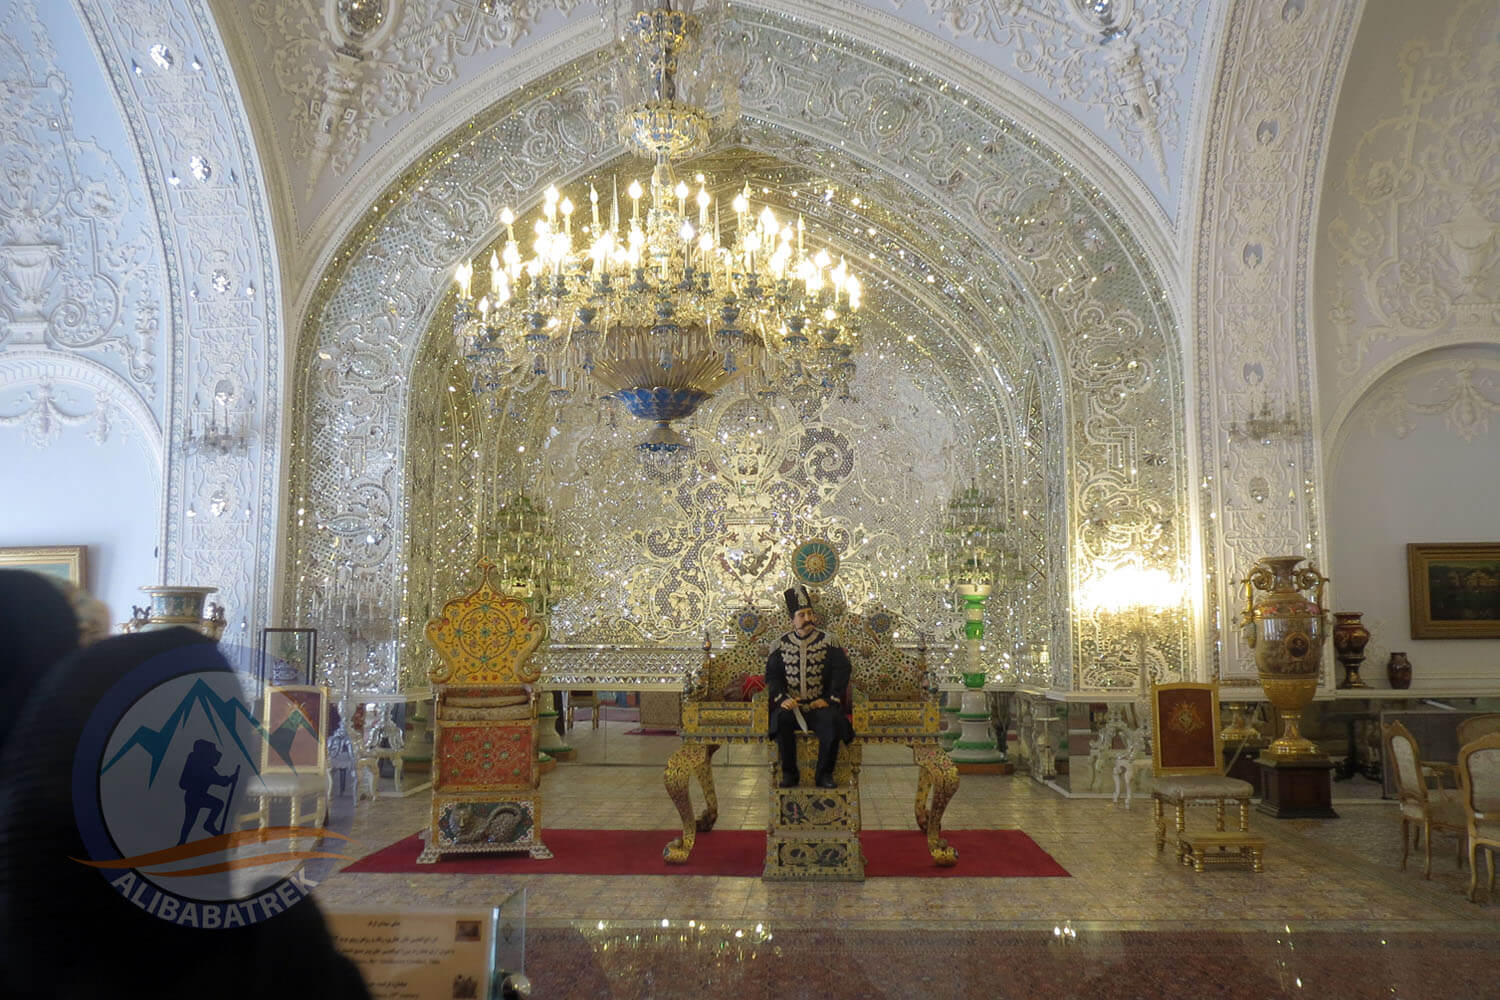 Alibabatrek iran tour packages Tehran day tour Tehran tour Tehran sightseeing tours Golestan Palace1